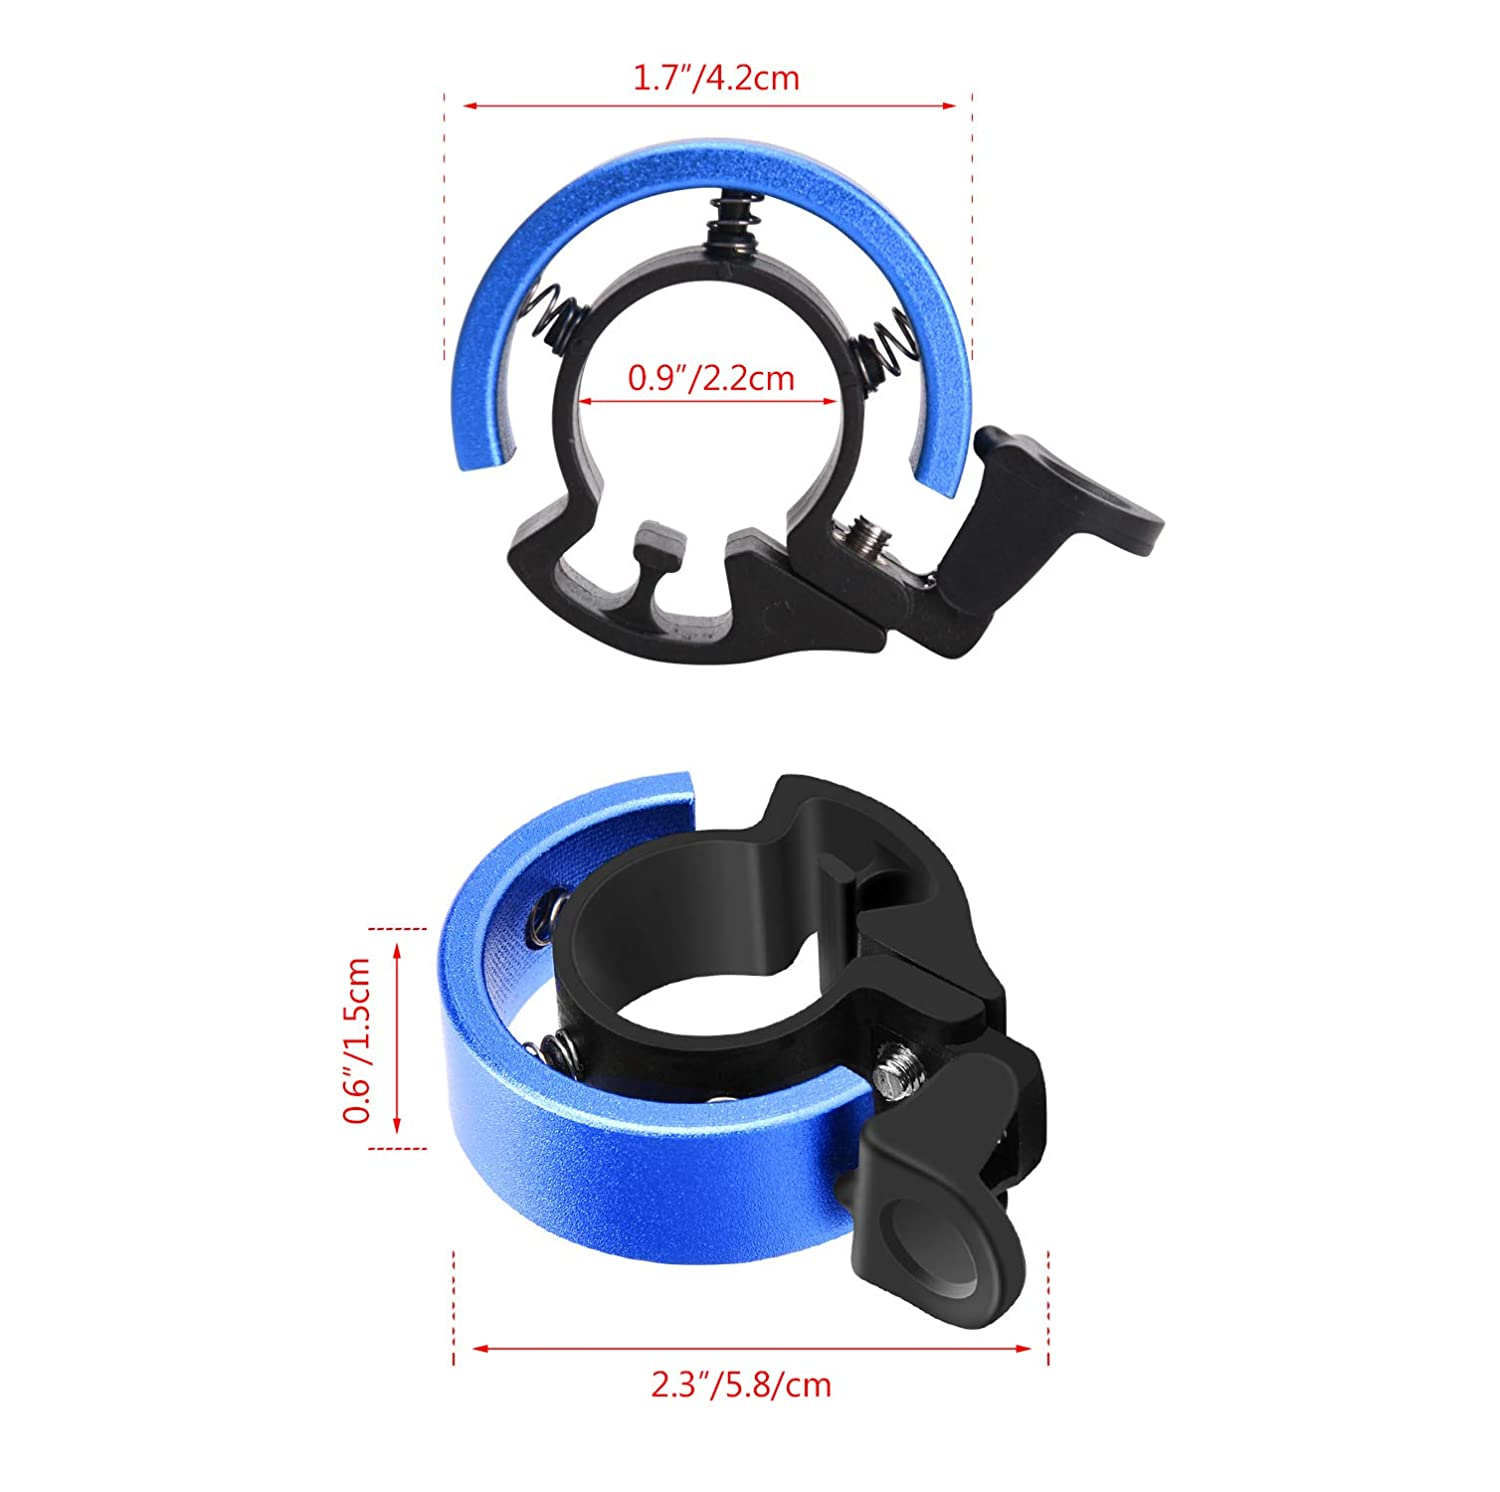 TOBWOLF Mountain Bike Bicycle Bell Free Rider Blue Aluminum Invisible Bike Bell Ring for MTB BMX